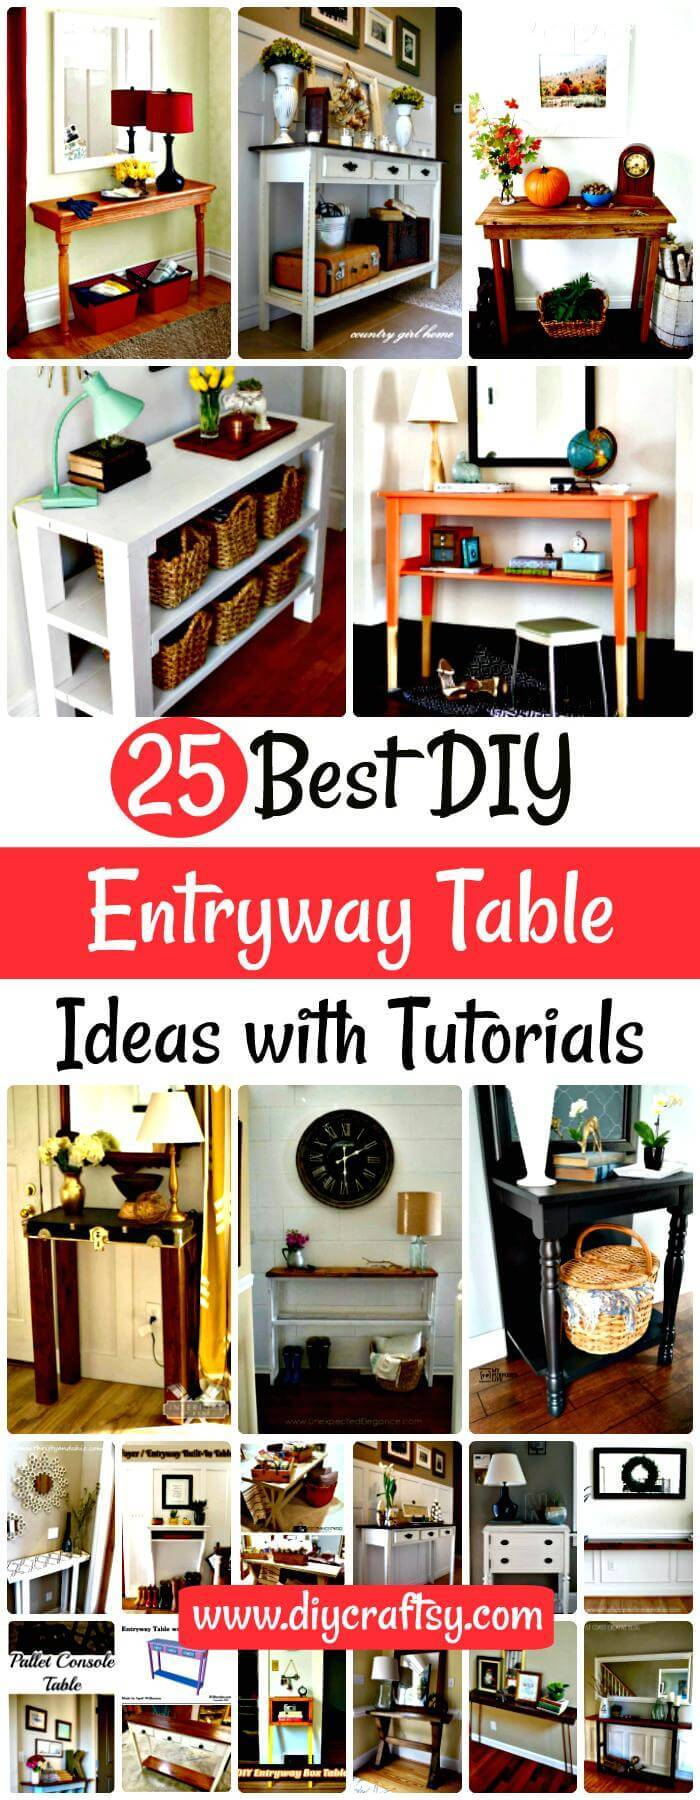 DIY Entryway Table Ideas